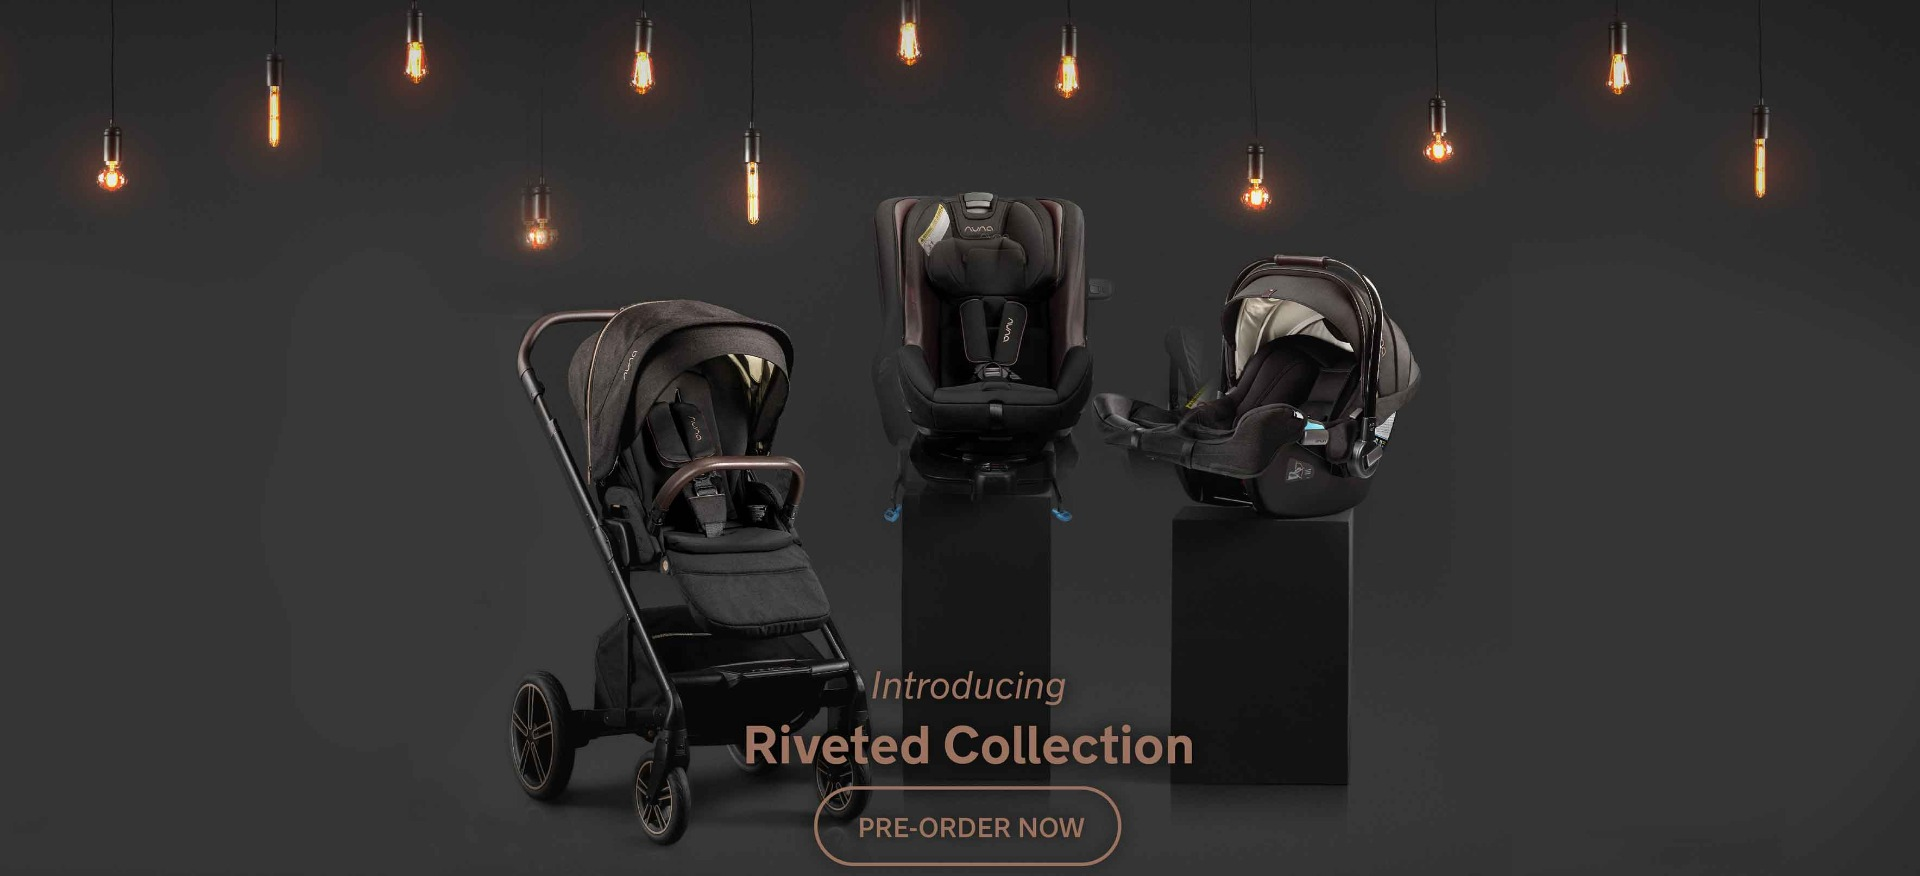 Nuna Riveted New Products